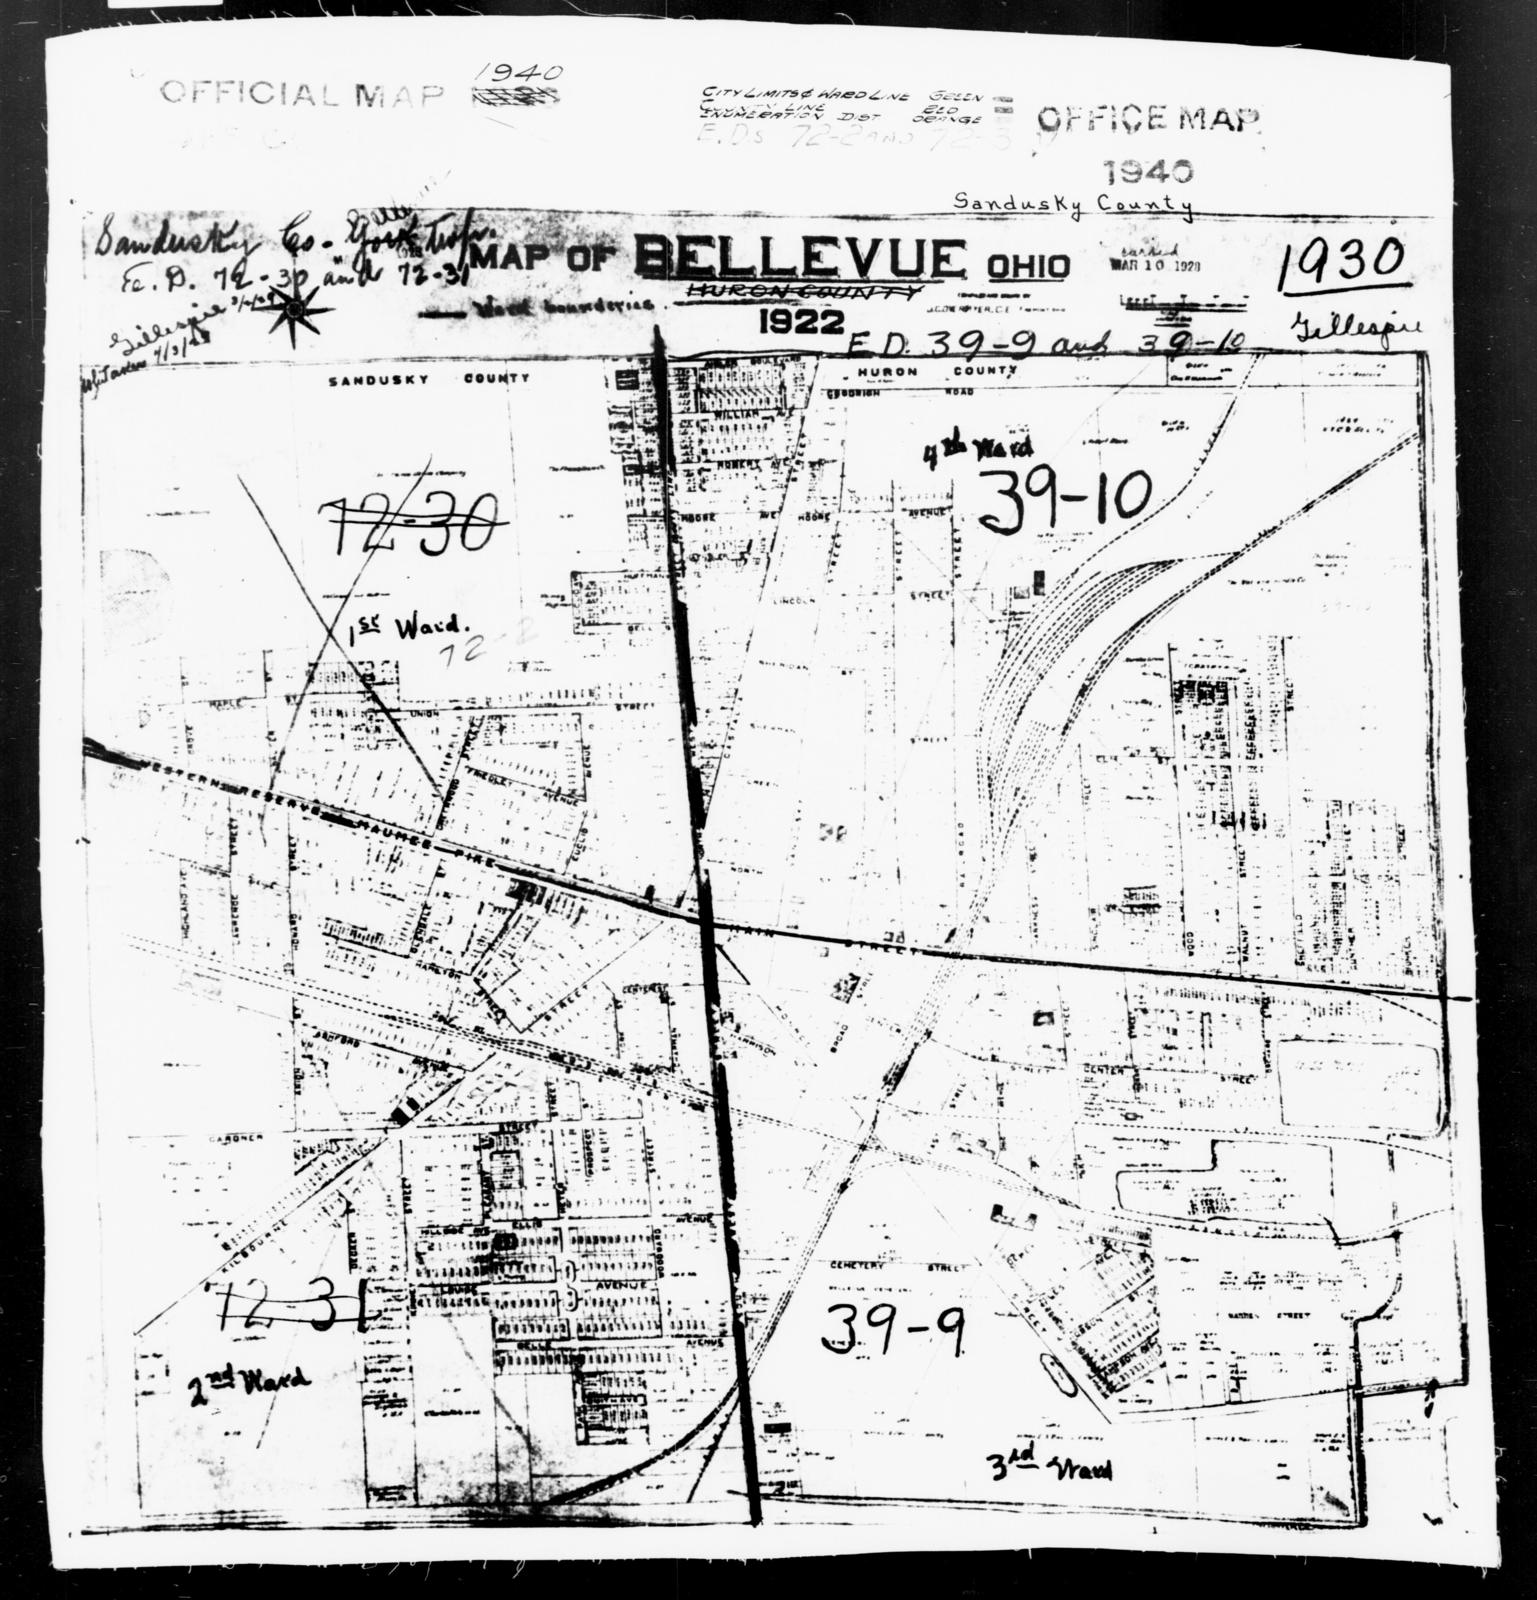 1940 Census Enumeration District Maps - Ohio - Sandusky County - Bellevue - ED 72-2, ED 72-3